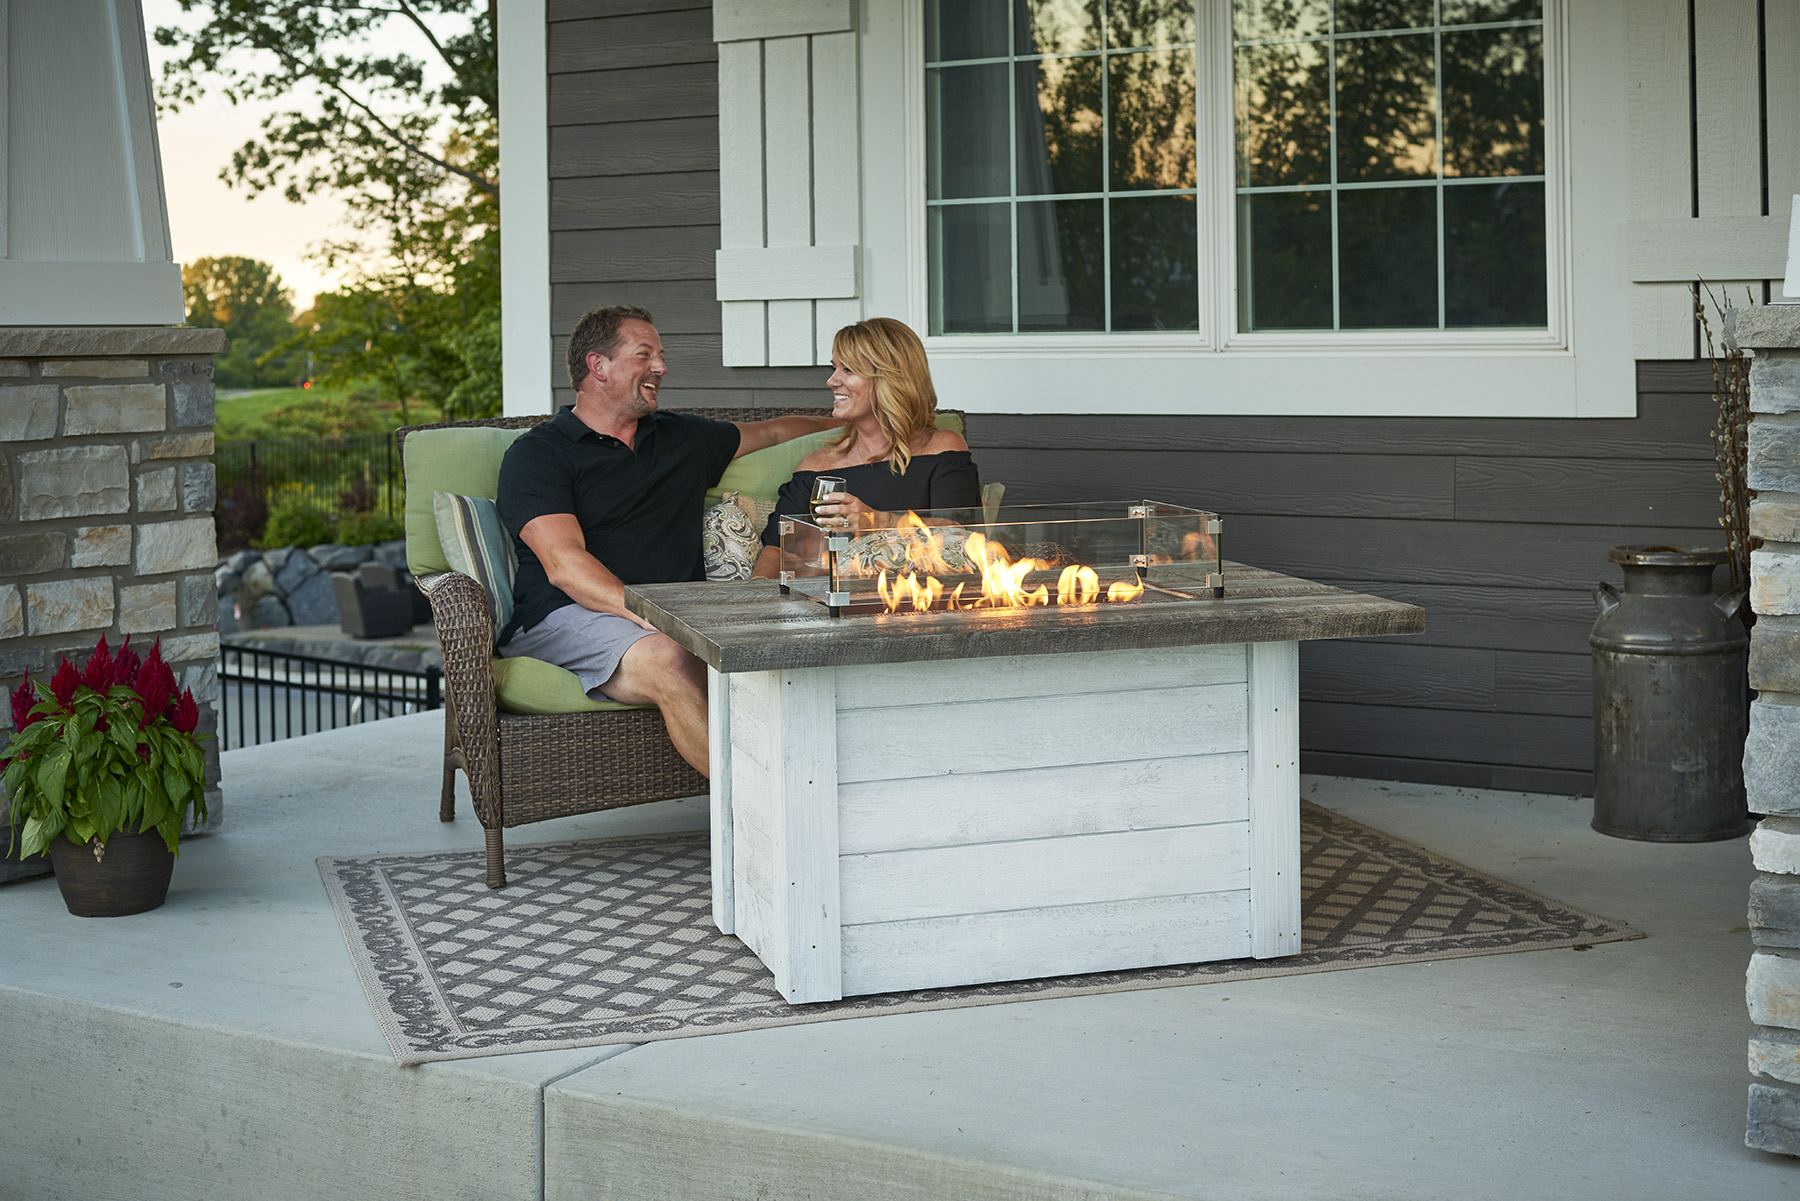 A couple sitting on their outdoor furniture ALberta with a fire table.